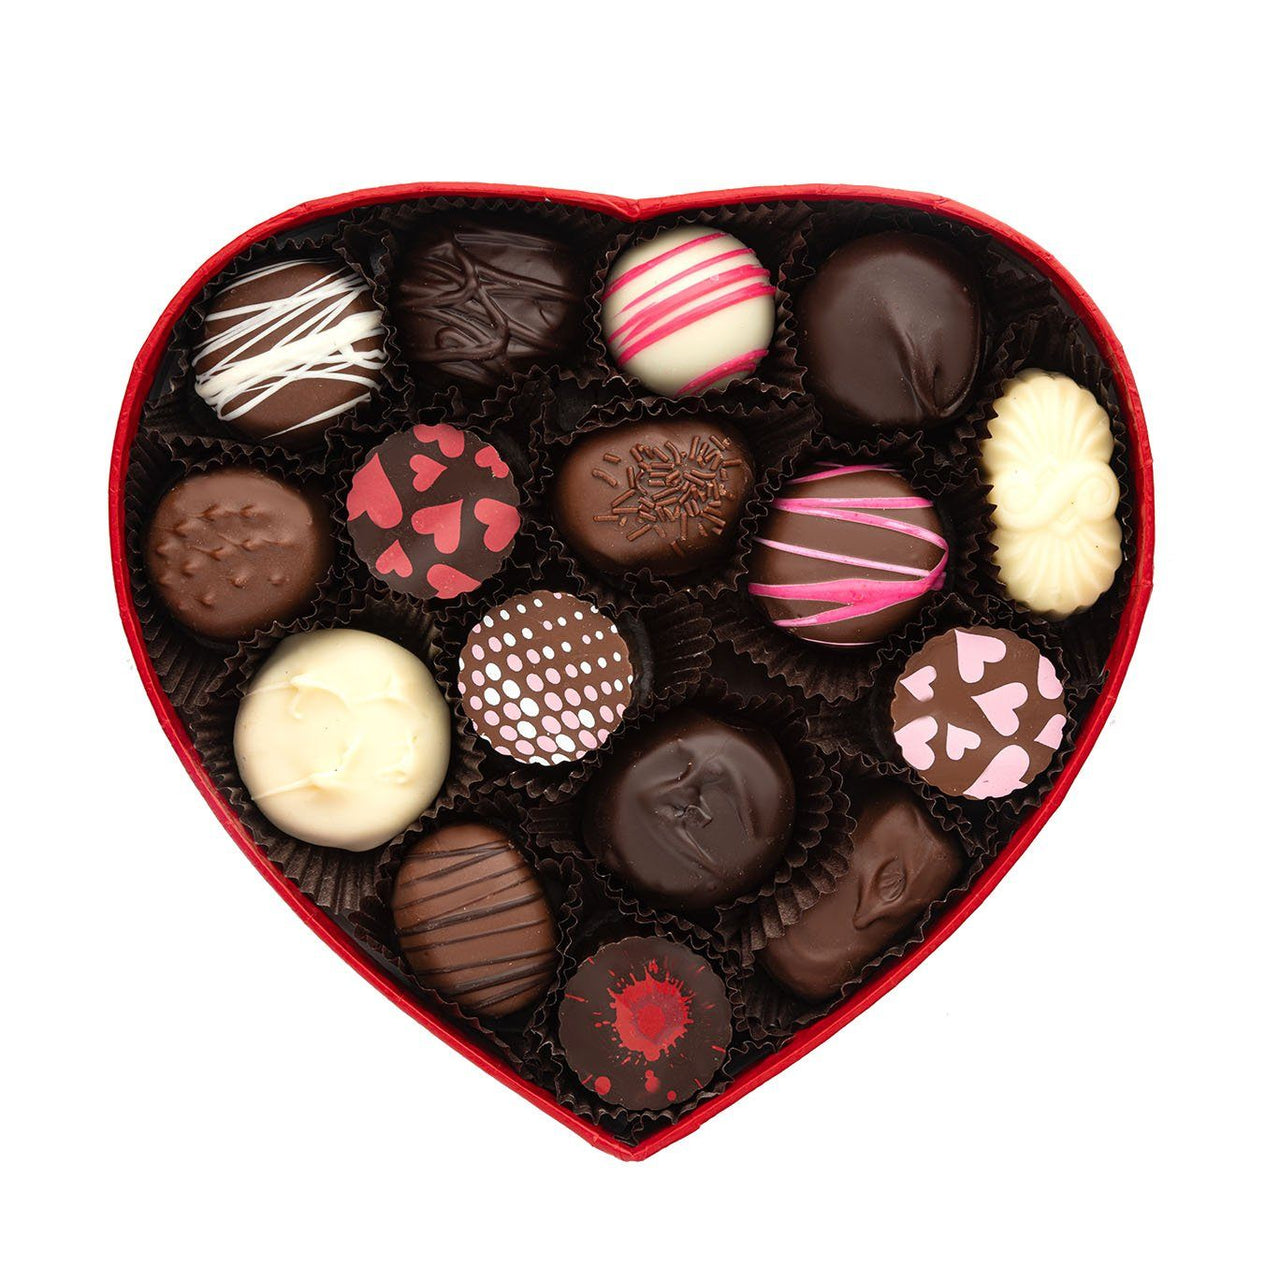 Valentine Heart Chocolate Assortment (4392217739379) (4654196916339) (4656665559155)